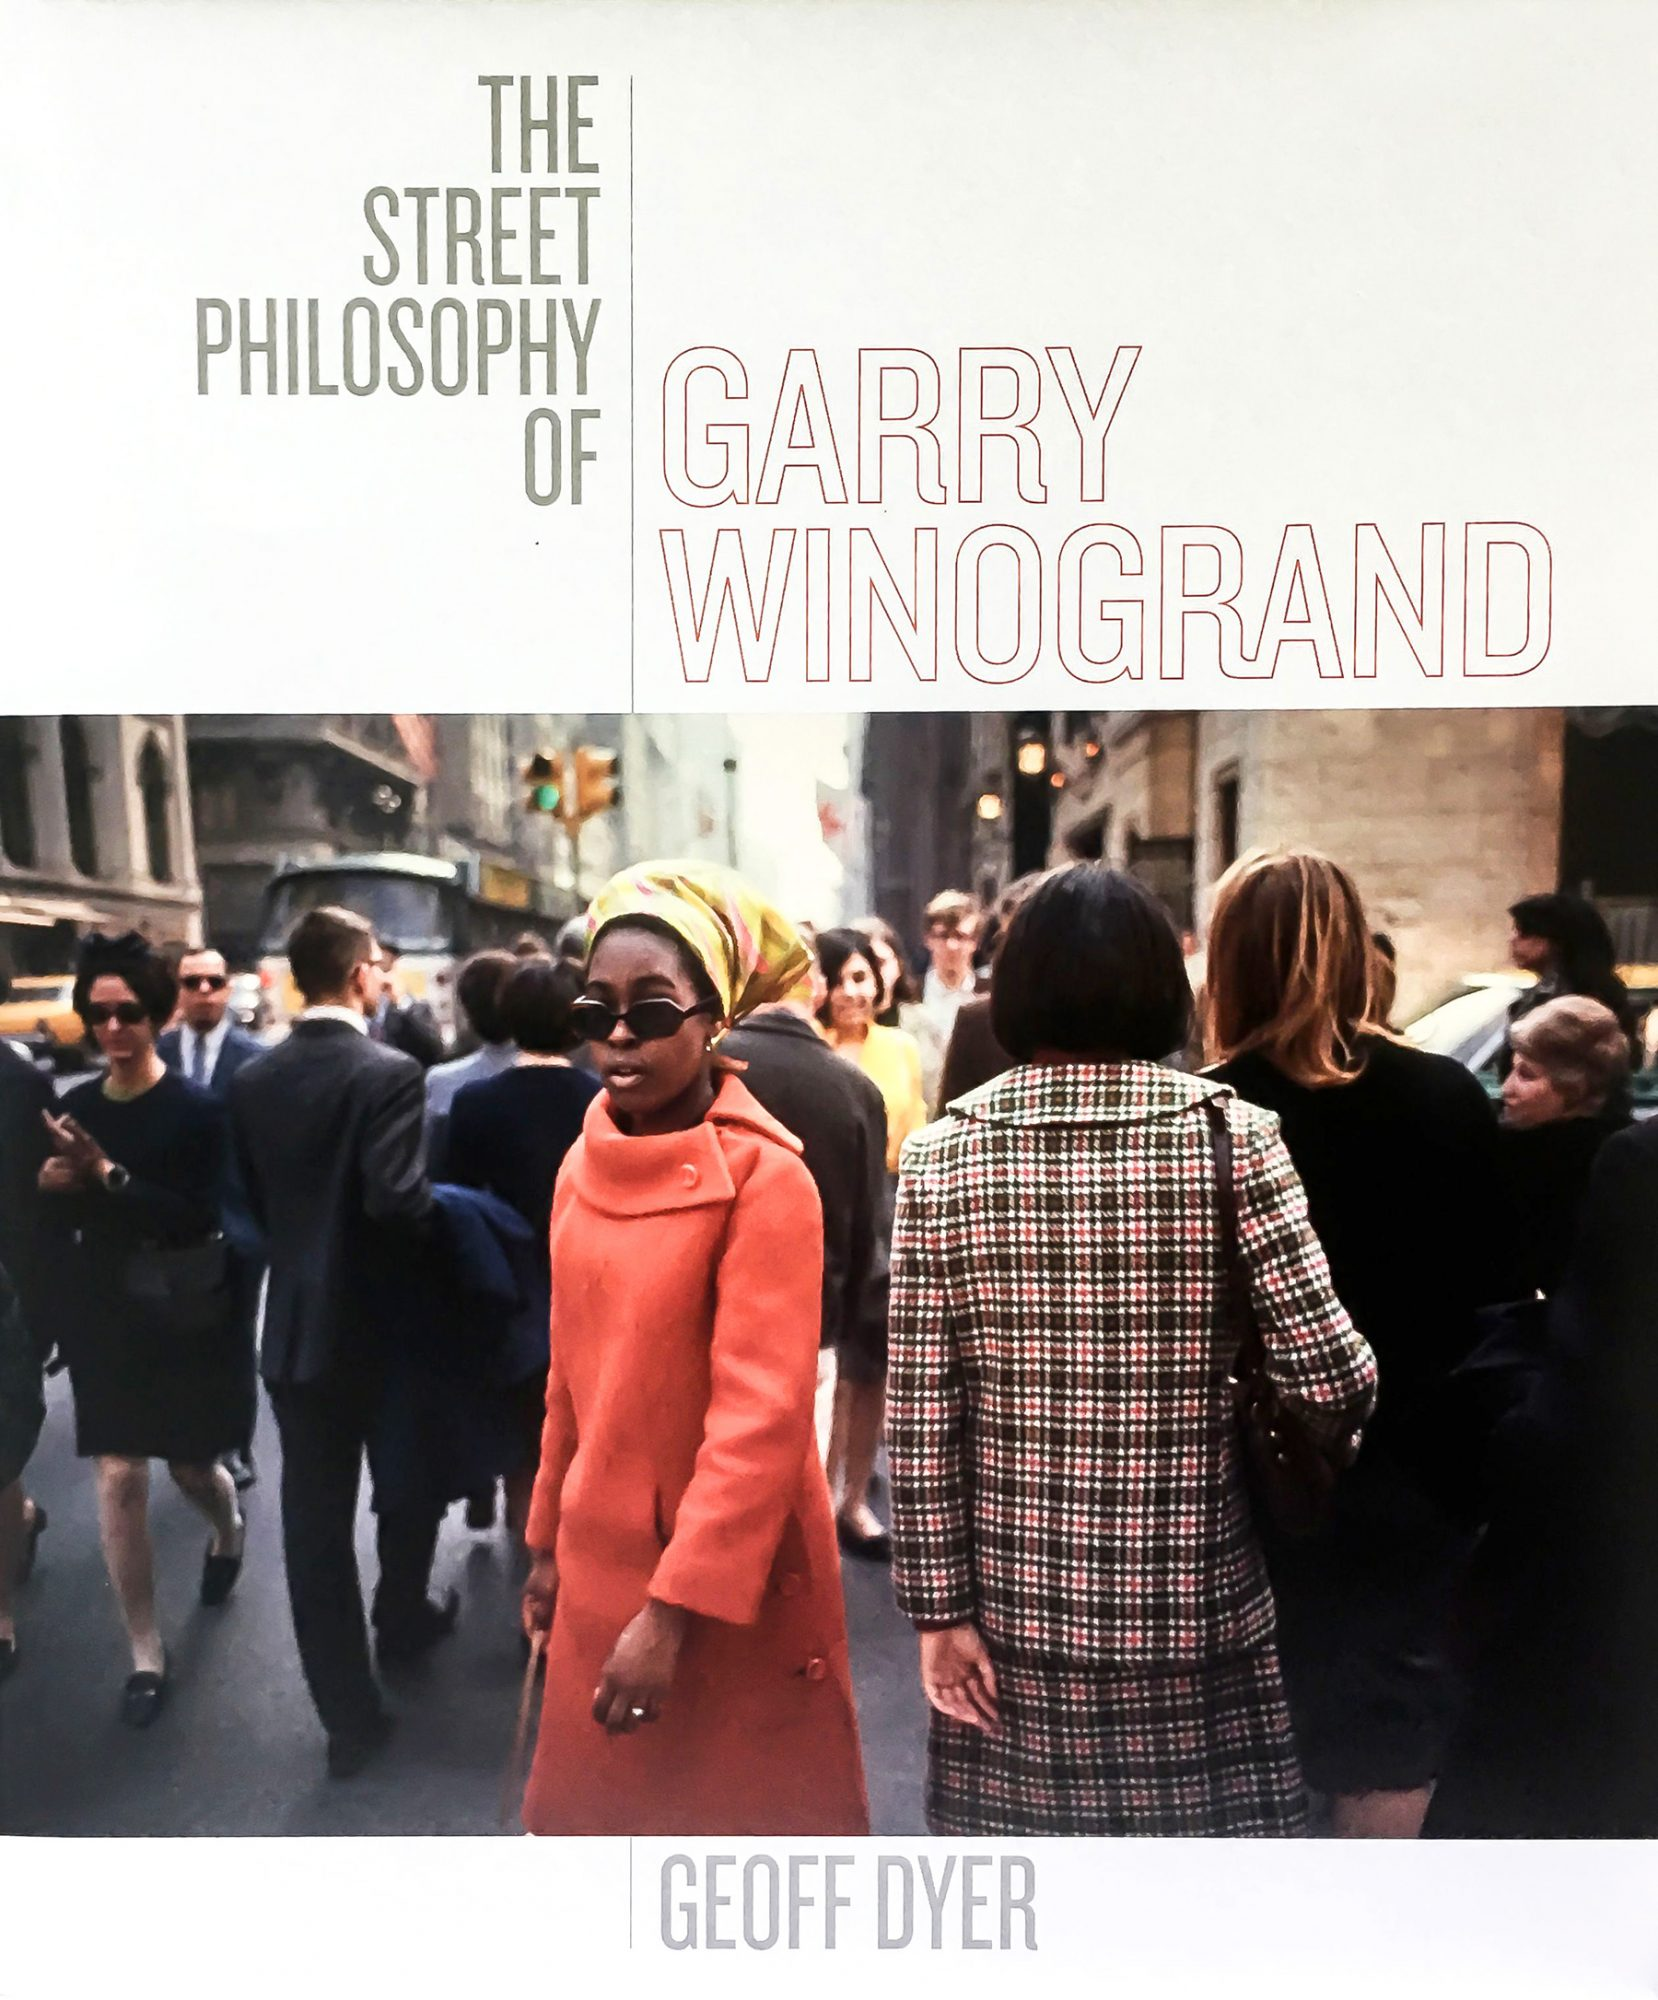 The Street of Philosophy of Garry Winogrand by Geoff Dyer